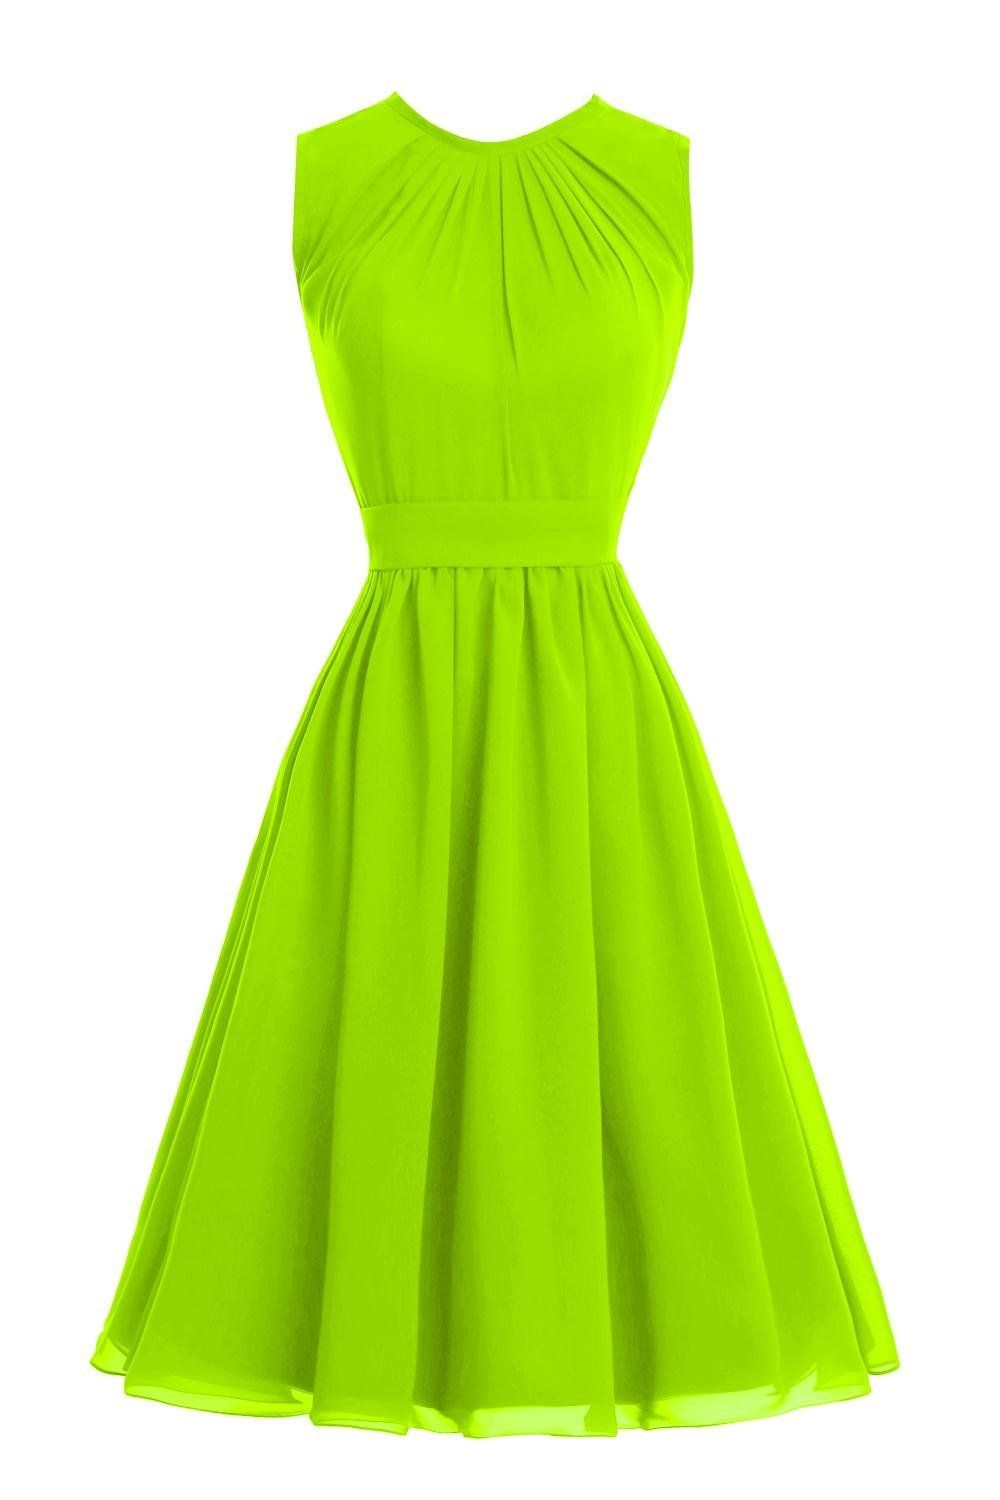 Bess bridal womens short juniors bridesmaid prom dress with bow